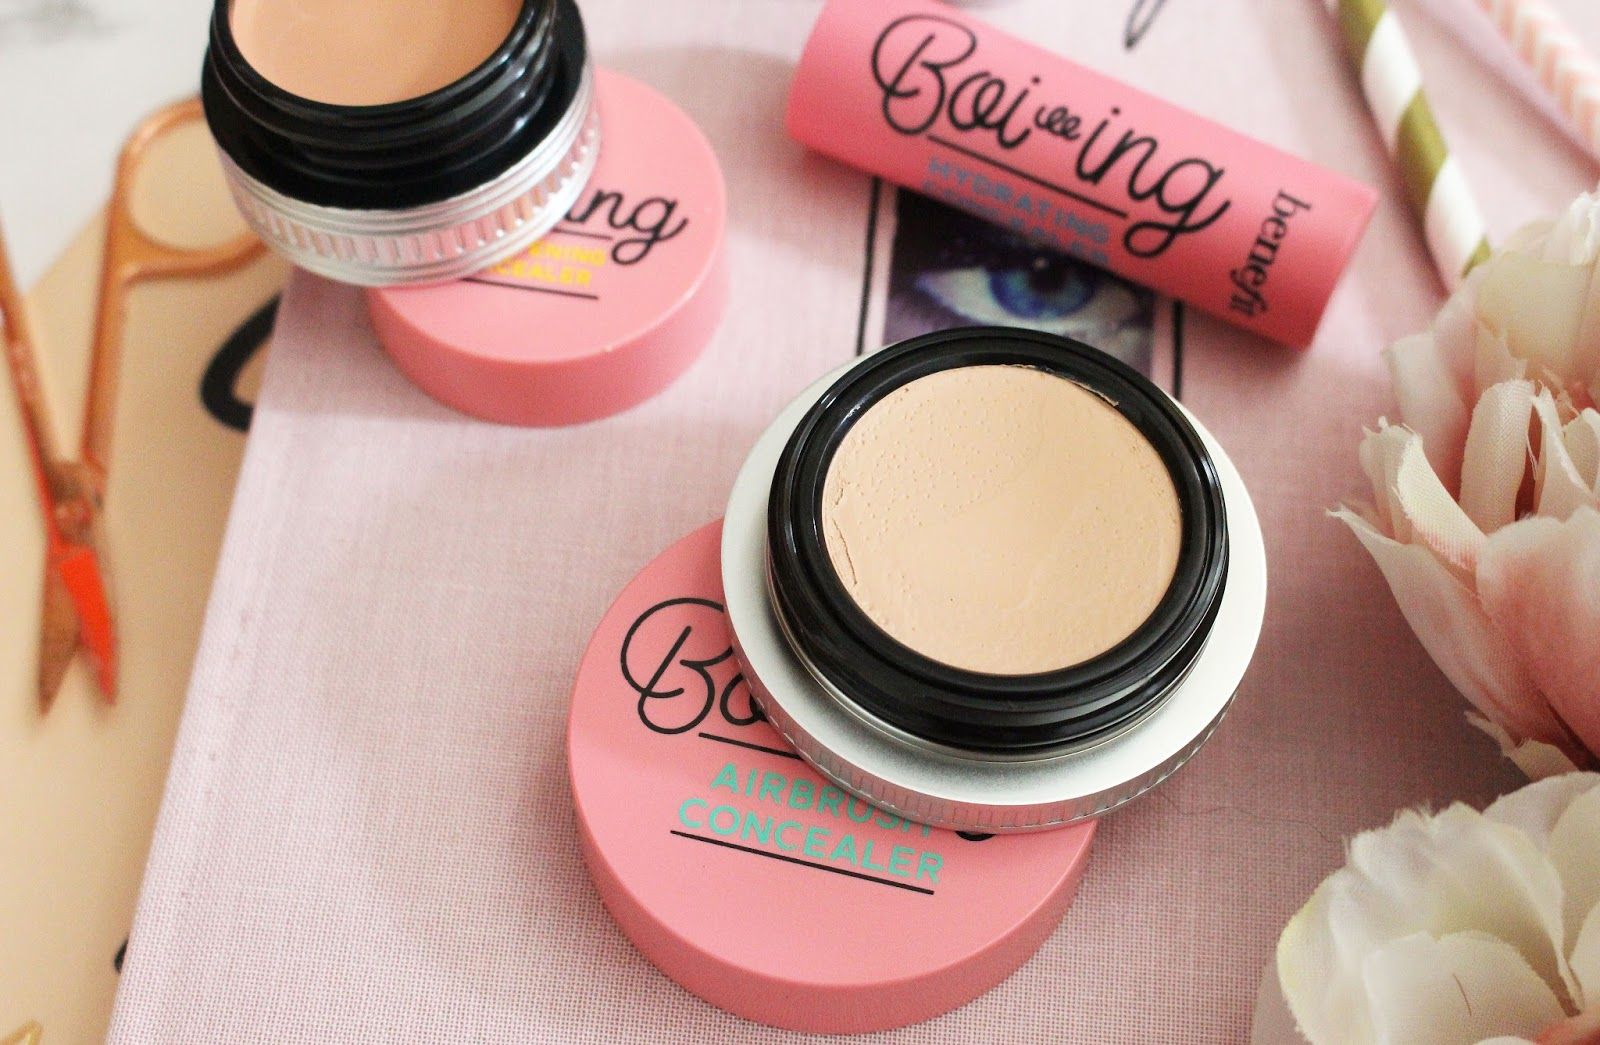 best under eye concealer, how to get rid of under eye bags, how to get rid of under eye darkness, Benefit concealer review uk, benefit make-up uk, benefit review, Boi-ing Airbrush Concealer,  Boi-ing Industrial Strength Concealer,  Boi-ing Hydrating Concealer, Boi-ing Brightening Concealer